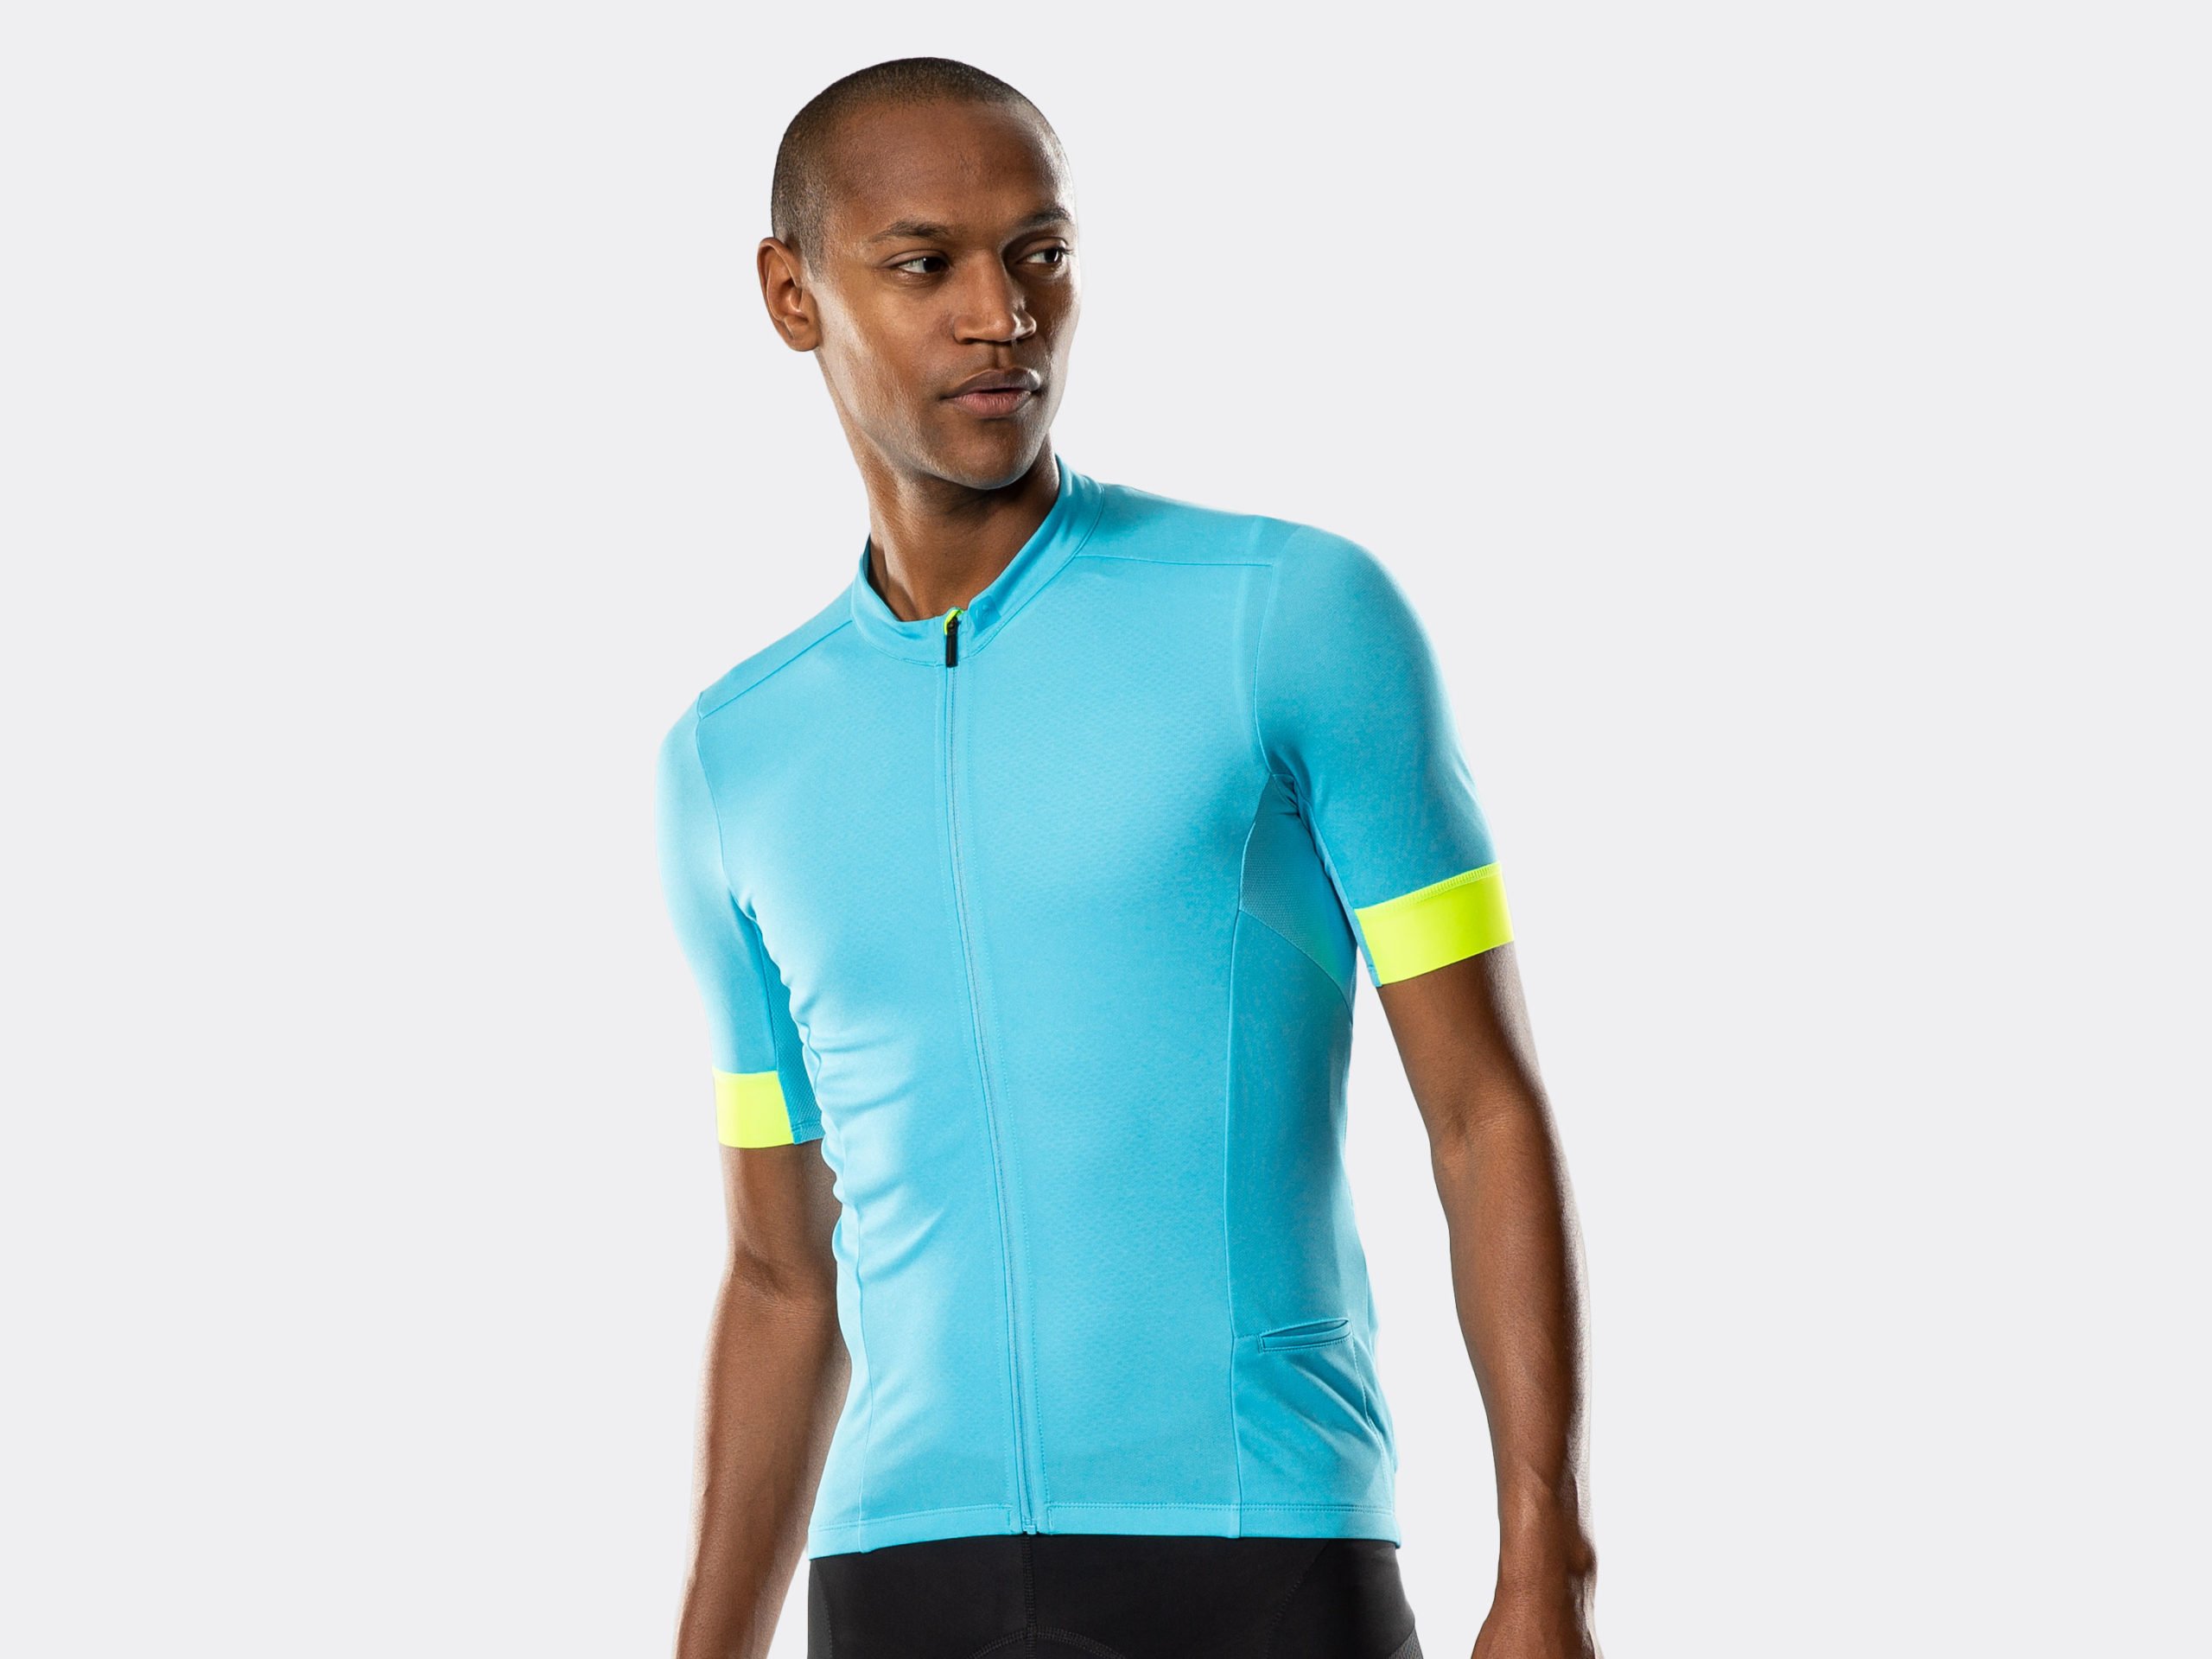 Bontrager Velocis Endurance Jersey in bluelight